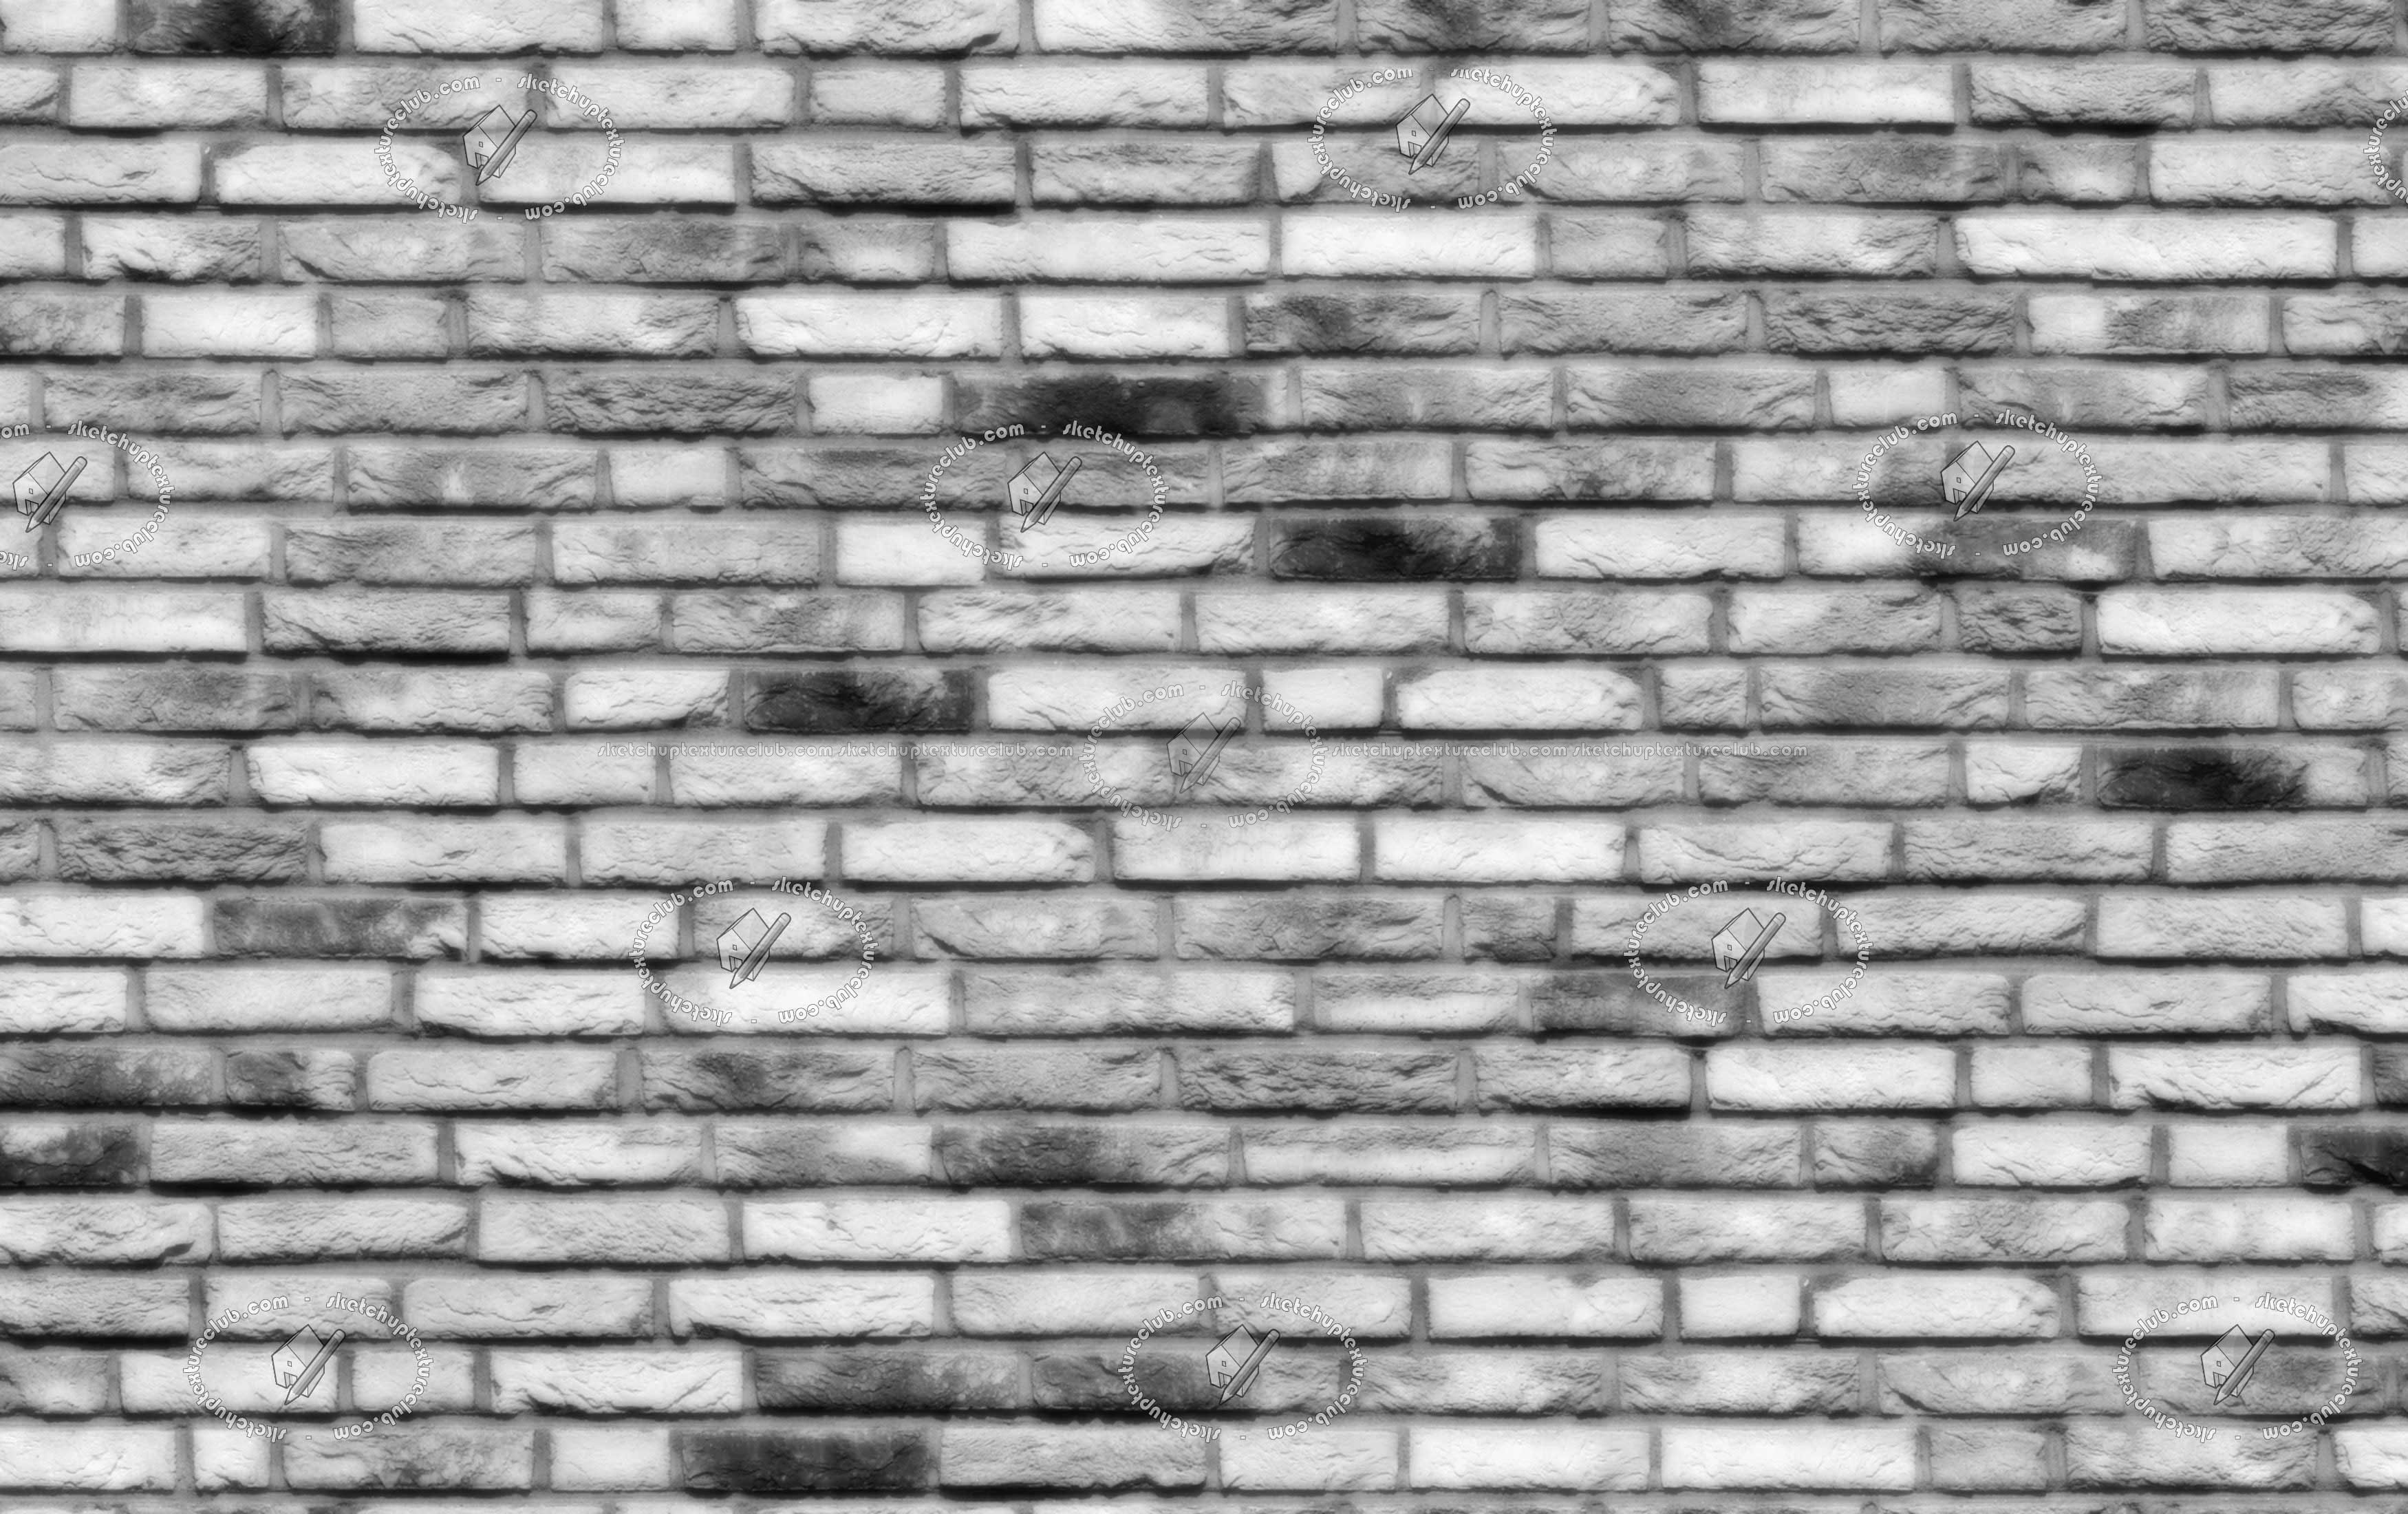 Old Brick Wall Texture Awesome Old Wall Brick Texture Seamless